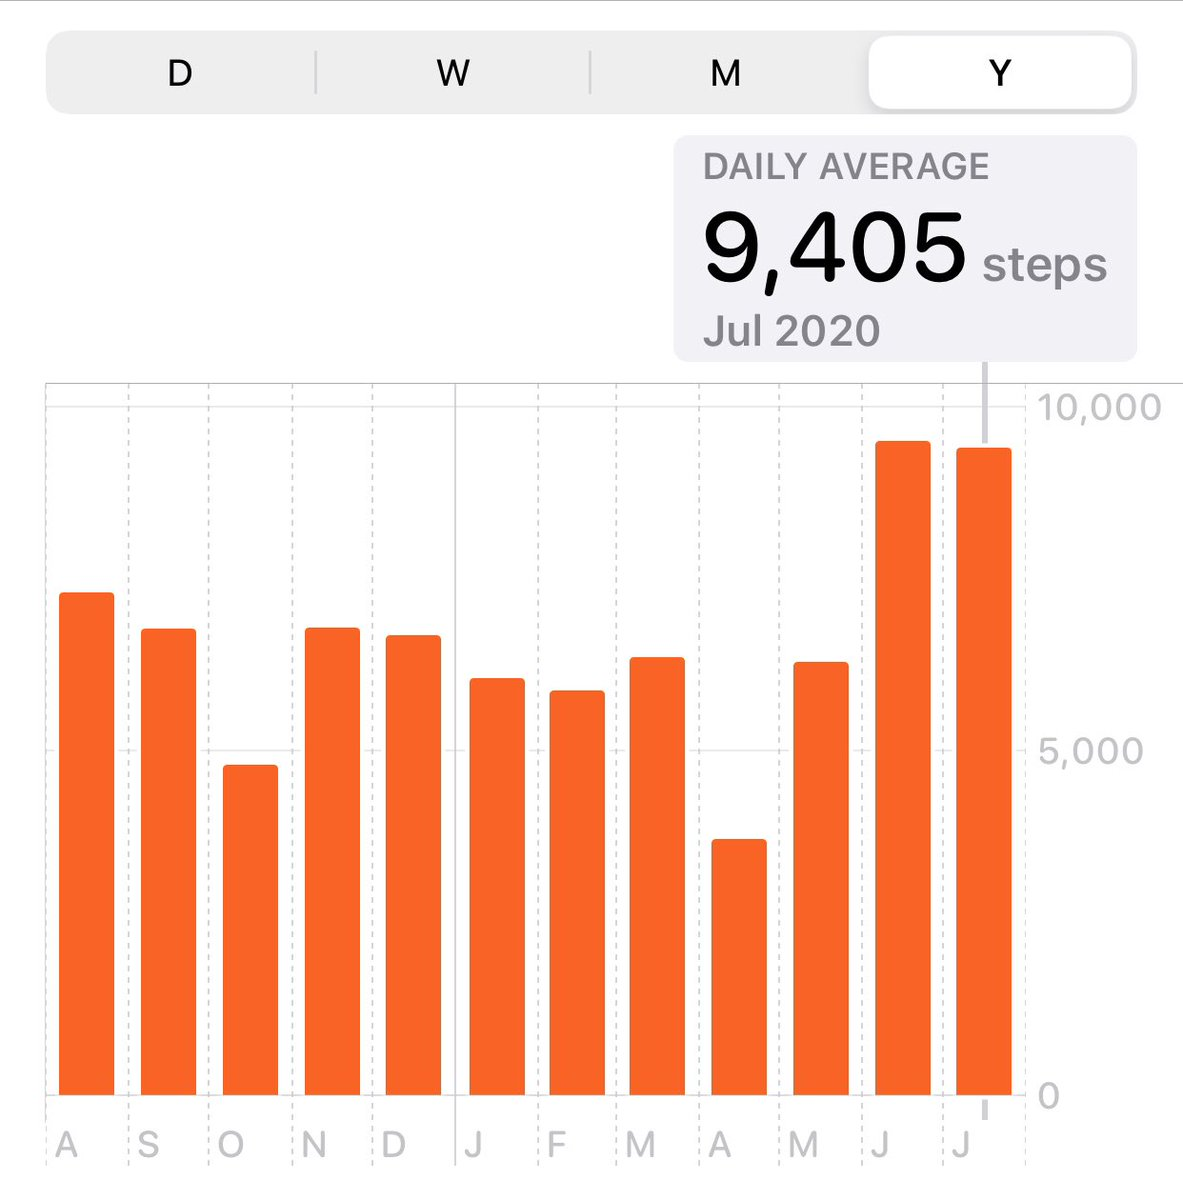 As expected, the motivation continued through July as well, and I almost hit the 100K on Nike run club 😅 Only 2 Kg lost this month and have hit a plateau. Going to start HIIT/Workouts at home to break the routine #StayHome #StayHealthy #NikeRunClub #TheNewNormal https://t.co/p5Zux6dTHi https://t.co/KS5yZo5tjy